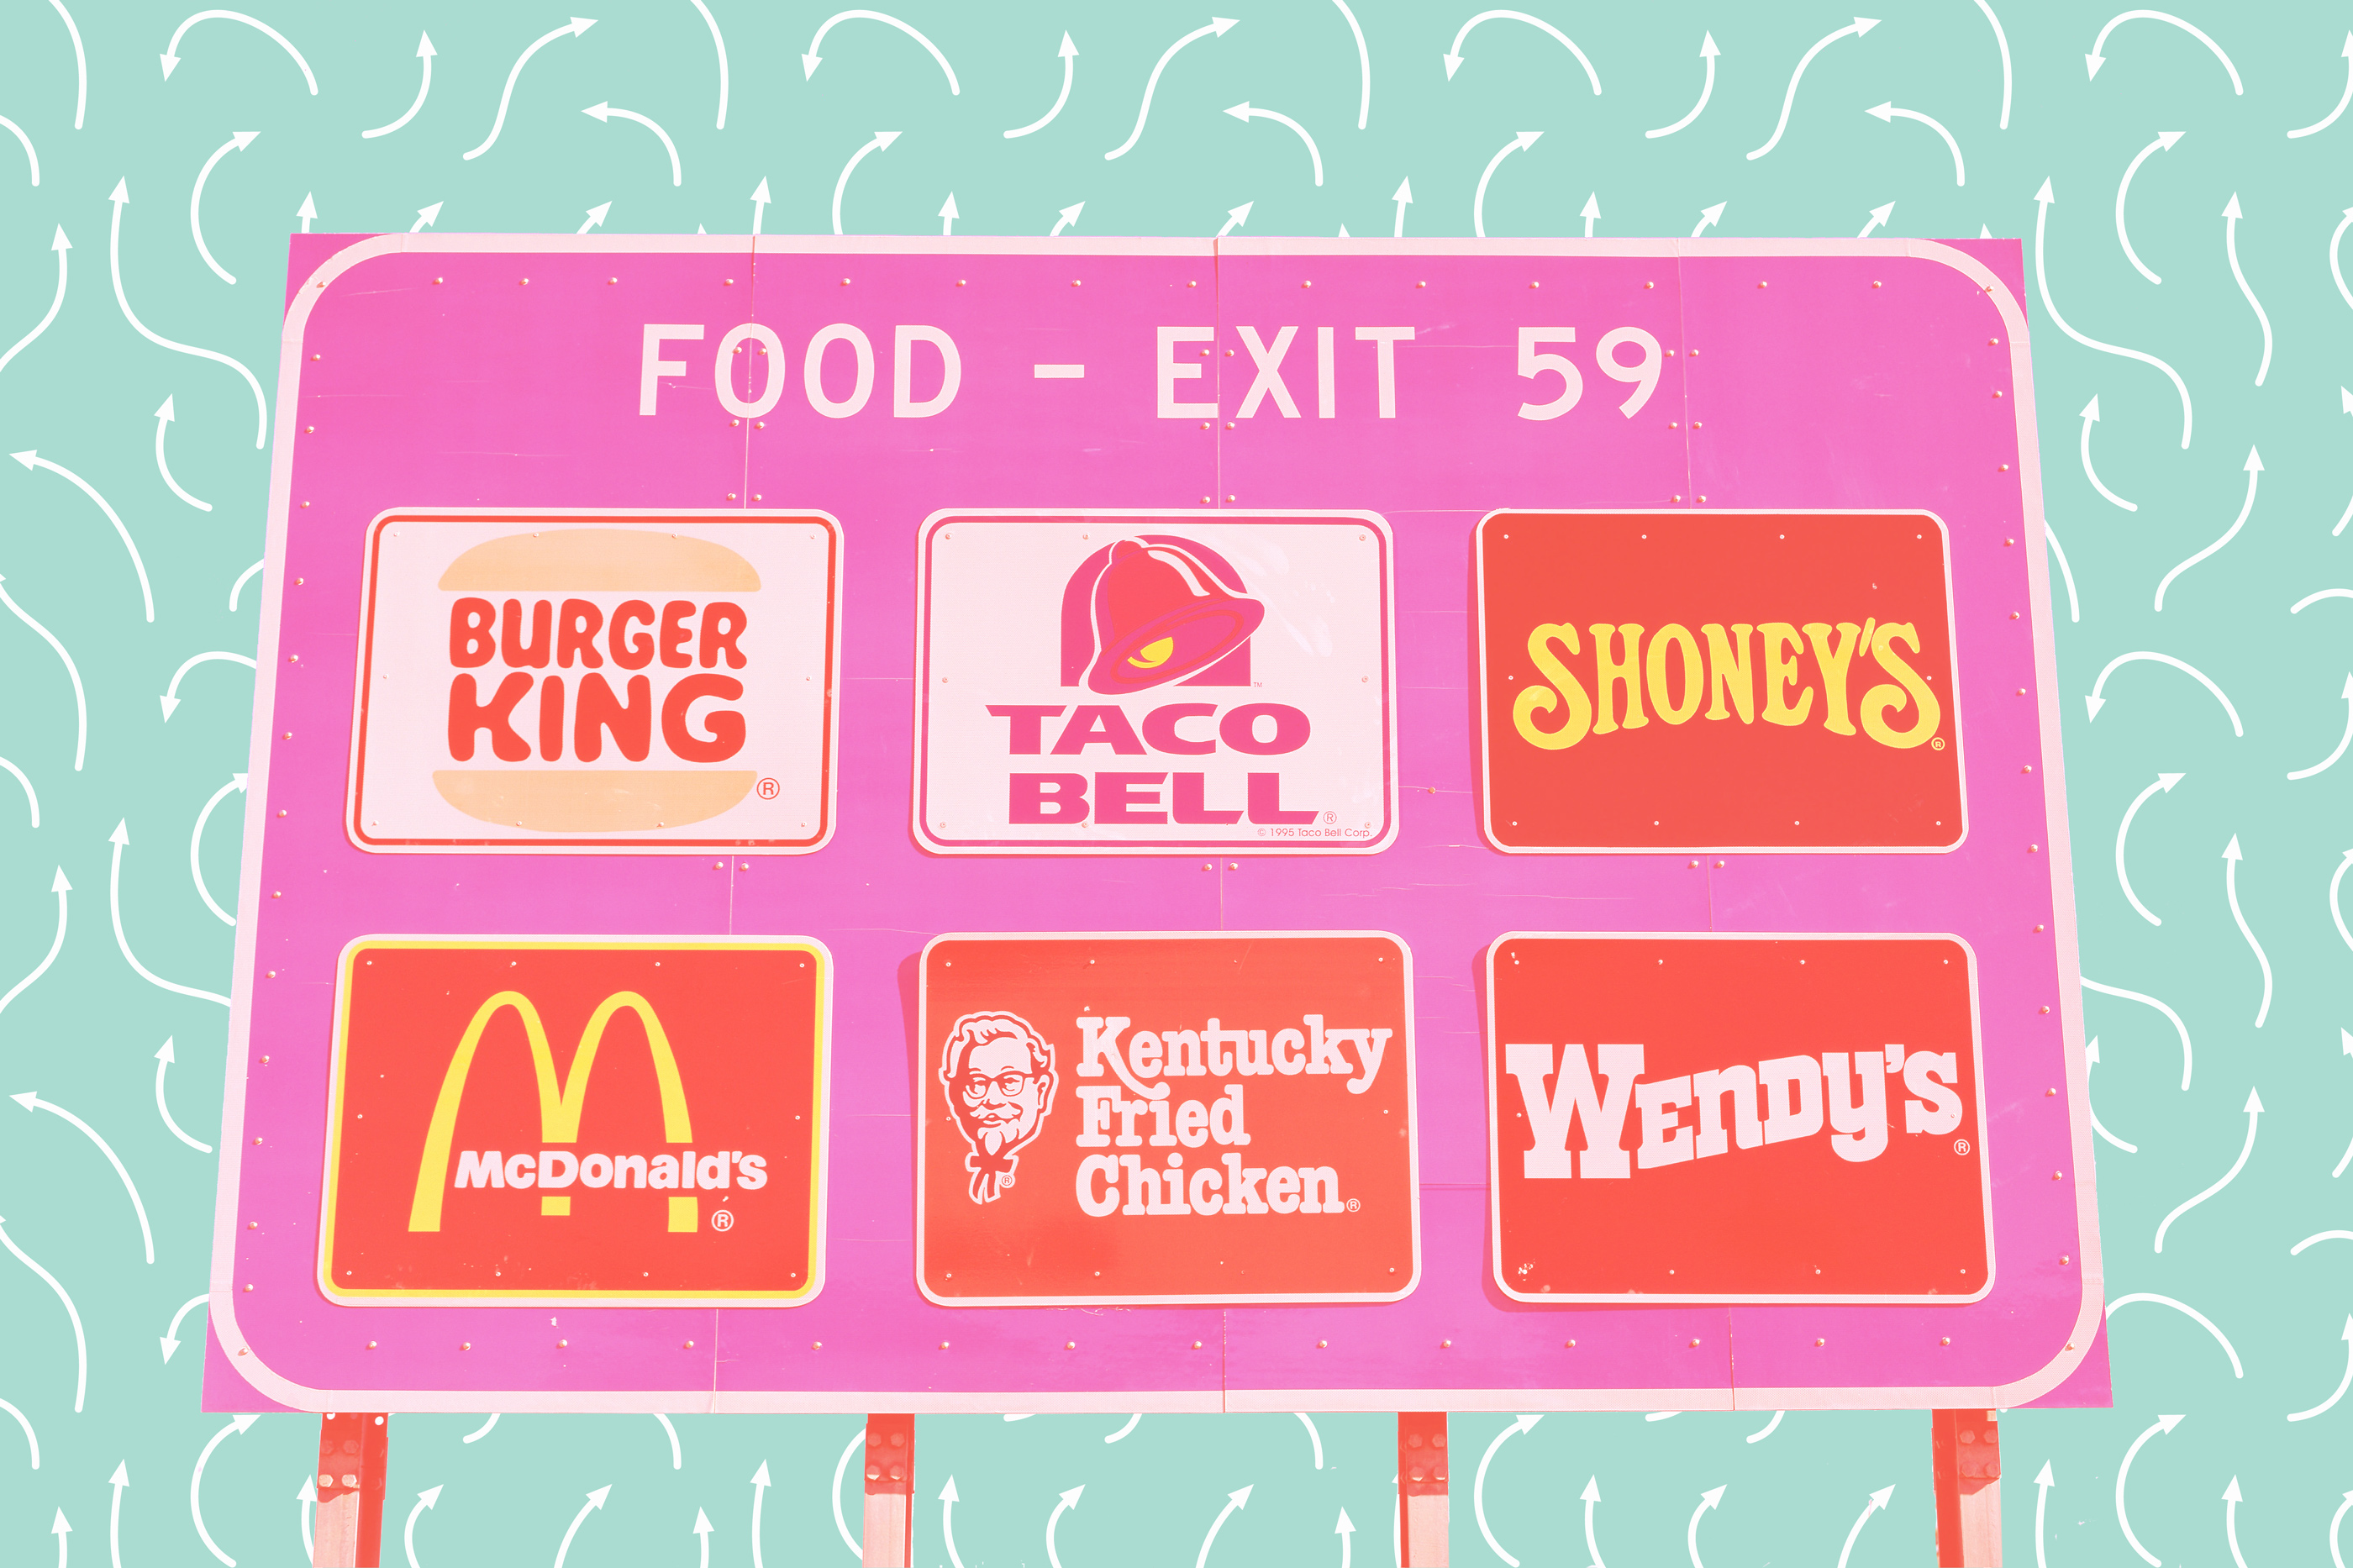 illustration with highway fast food exit sign